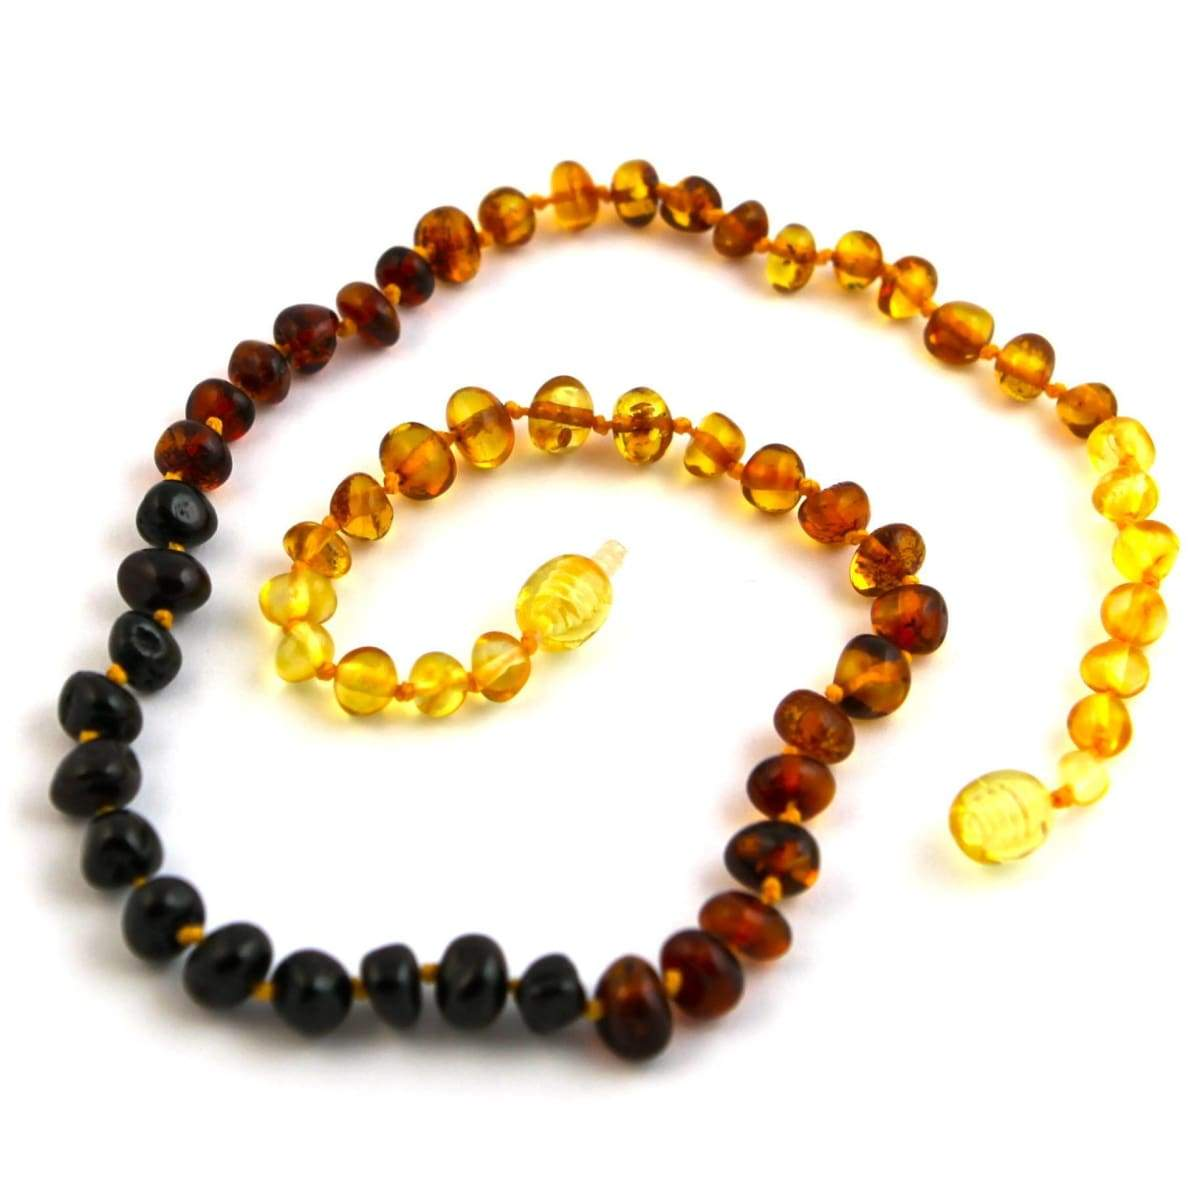 Baltic Amber Rainbow Round - 16 Necklace - Baltic Amber Jewelry